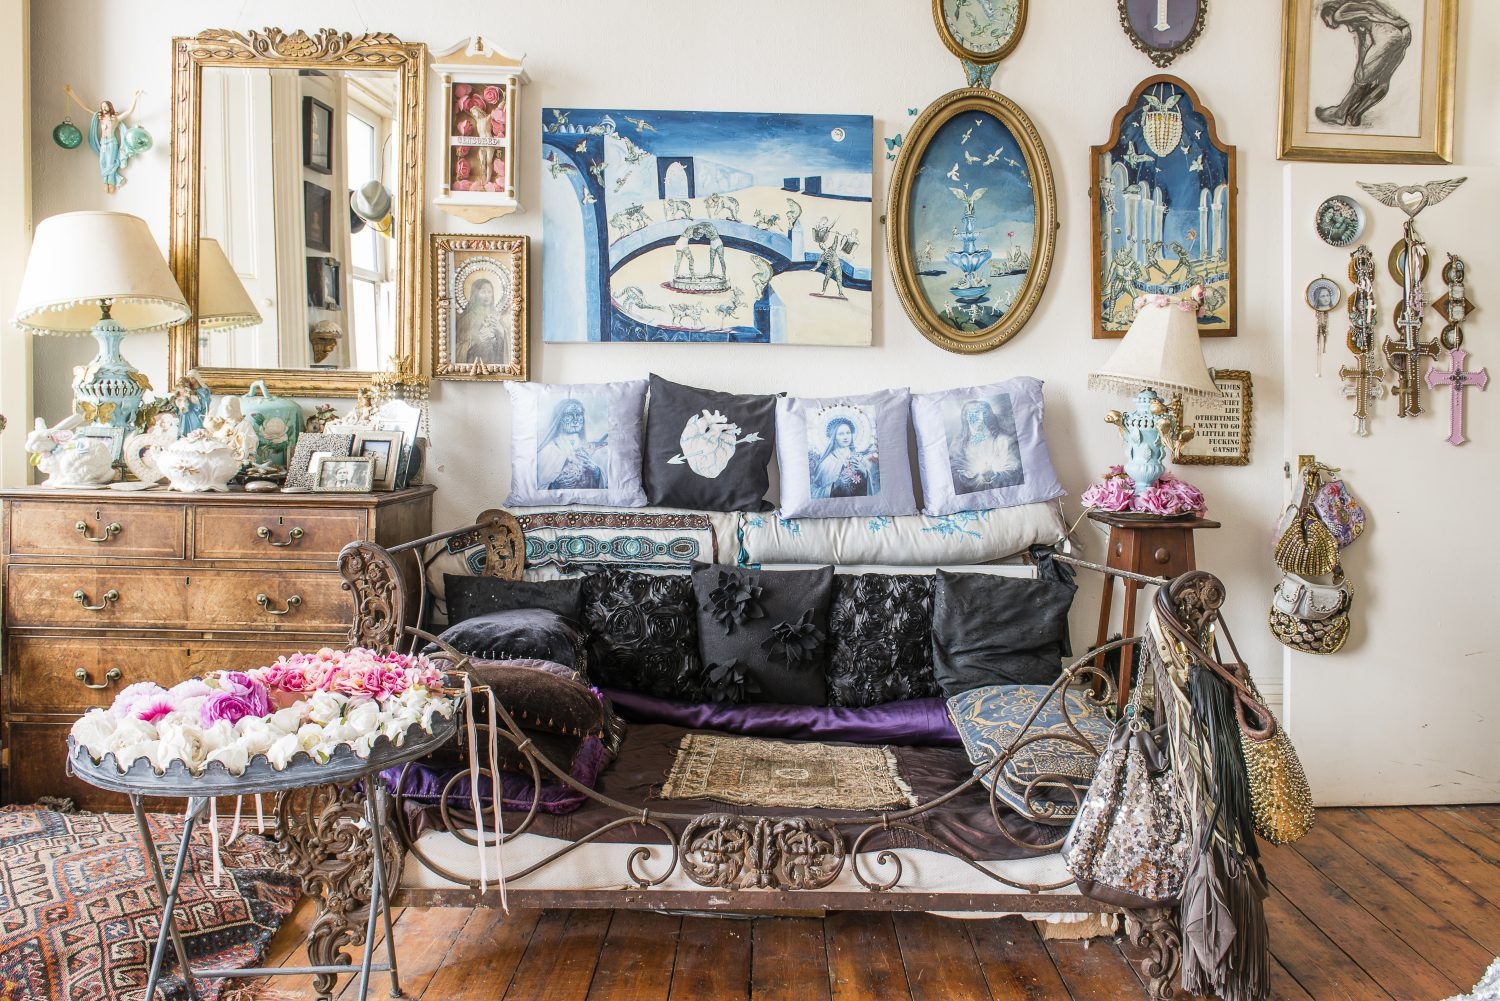 The French day bed is sourced from long-time St Leonards dealer, Eamon and is topped with bolsters which Sassy made herself with fabric remnants, bits of old duvet, vintage ribbons and sequin belts